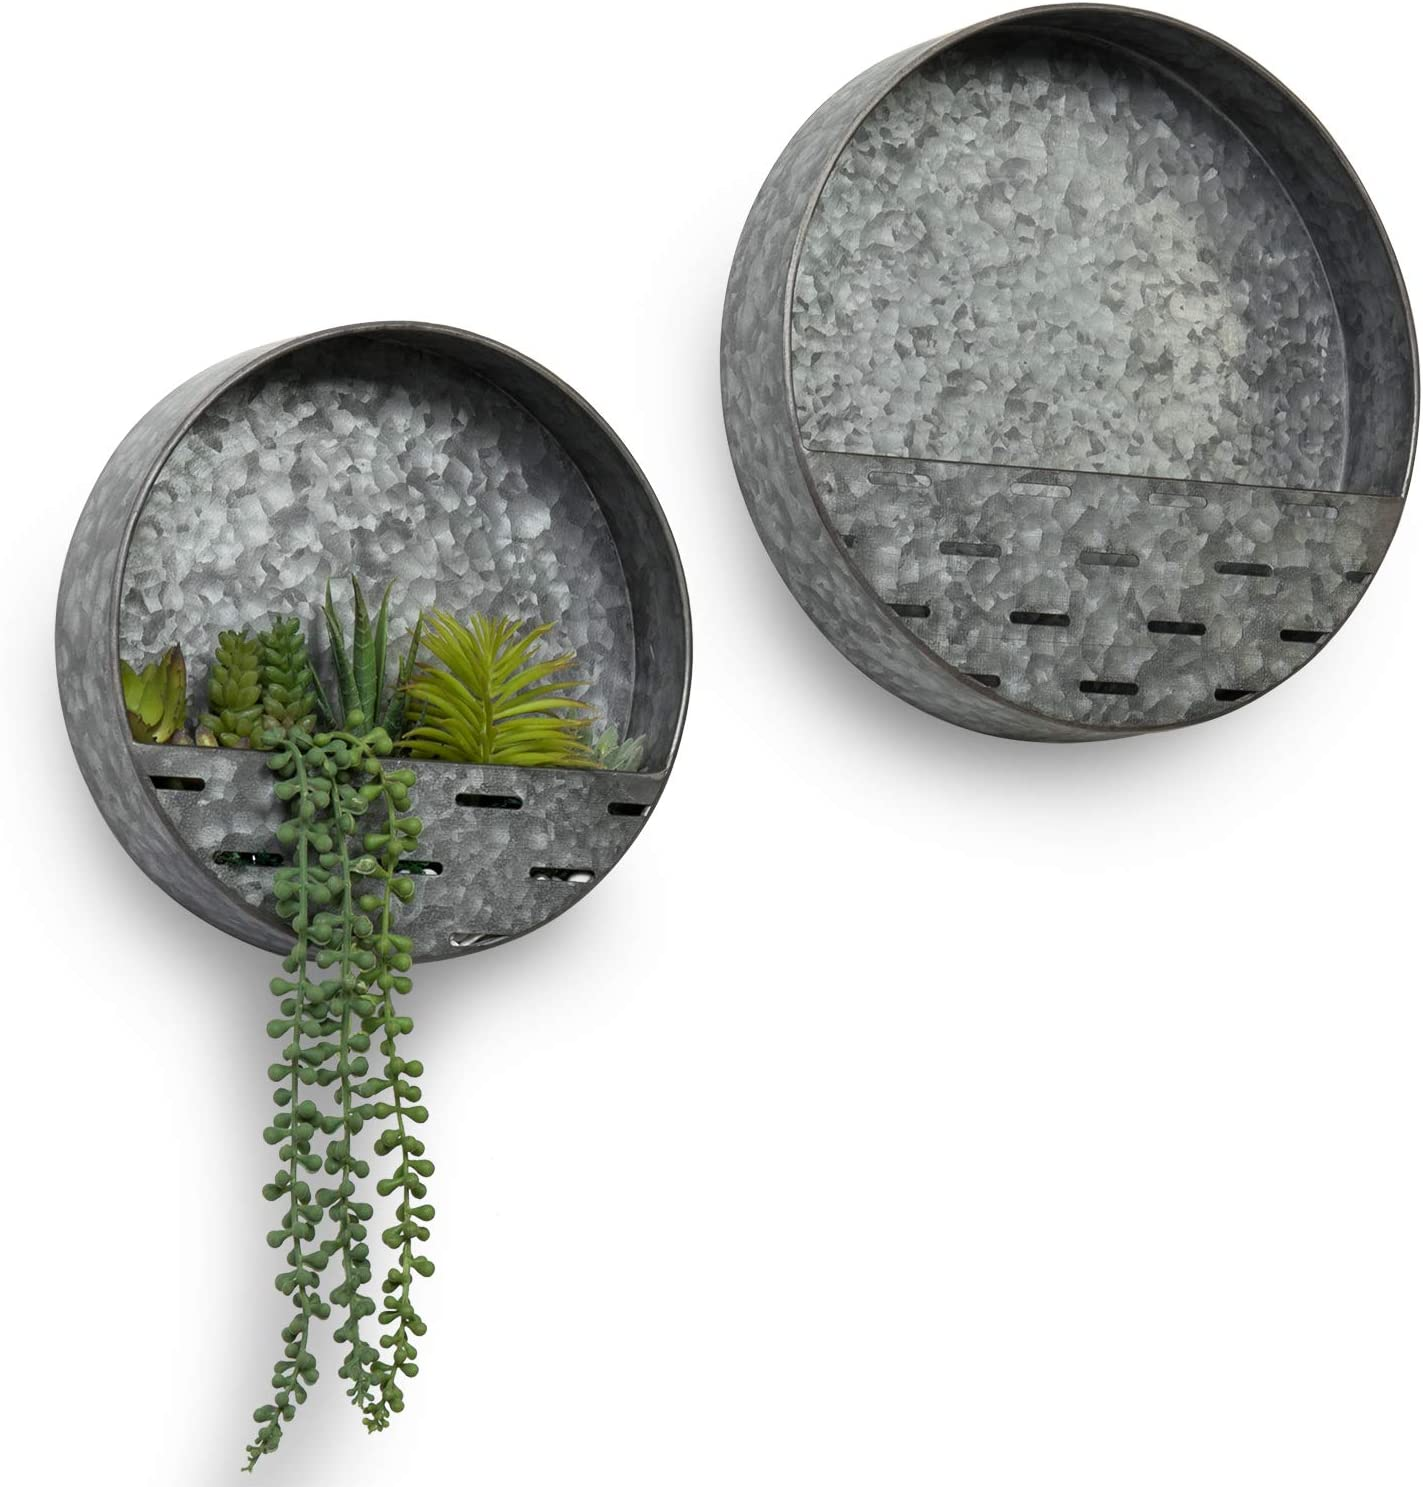 MyGift Rustic Silver Galvanized Metal Round Decorative Succulent/Air Plant Hanging Wall Planter Pots, Set of 2